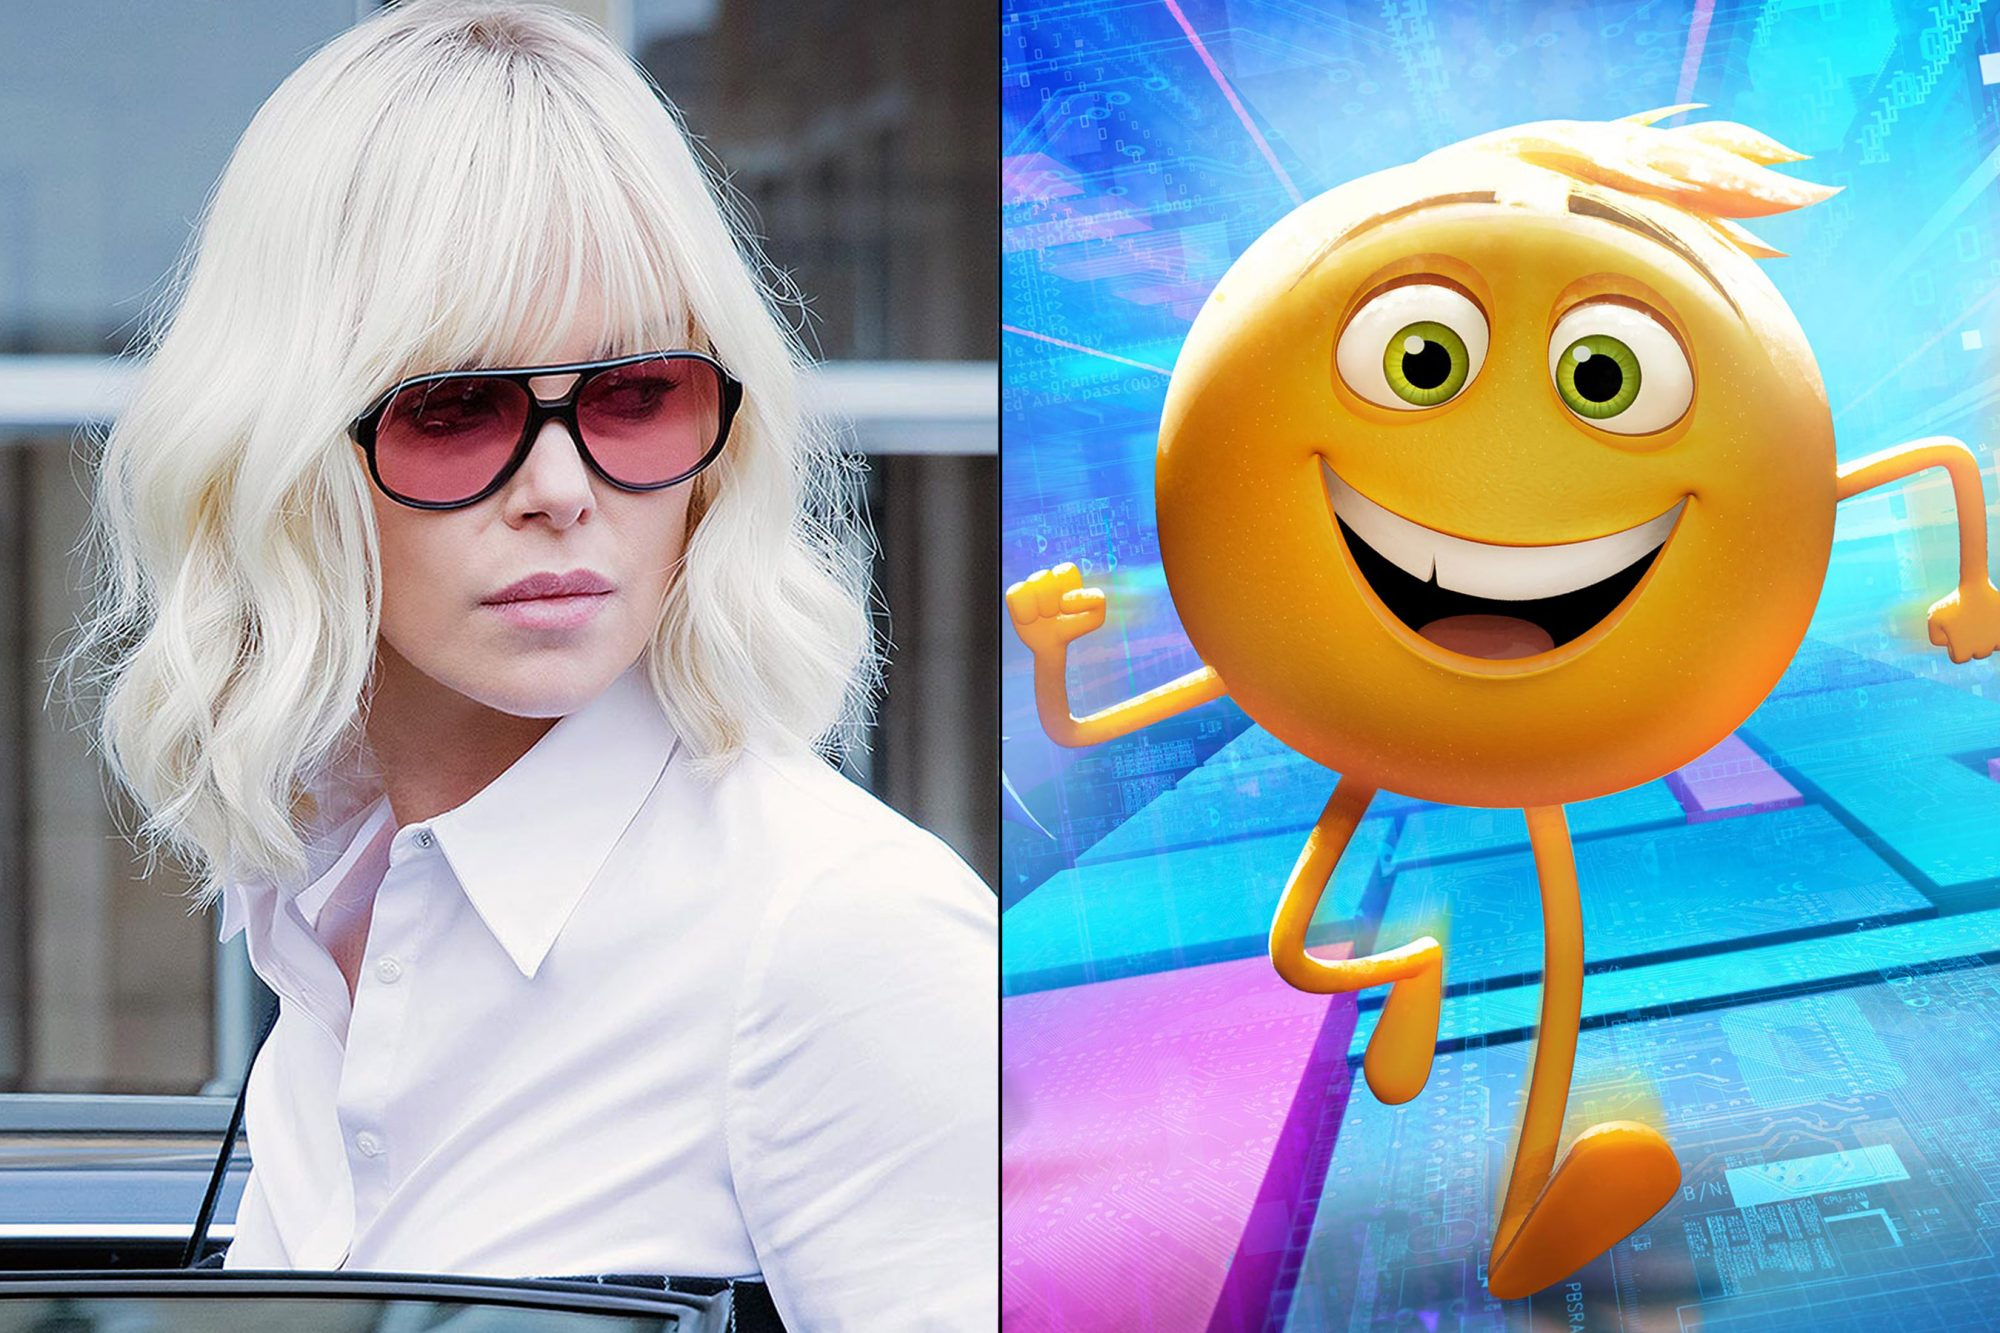 Atomic Blonde and The Emoji Movie